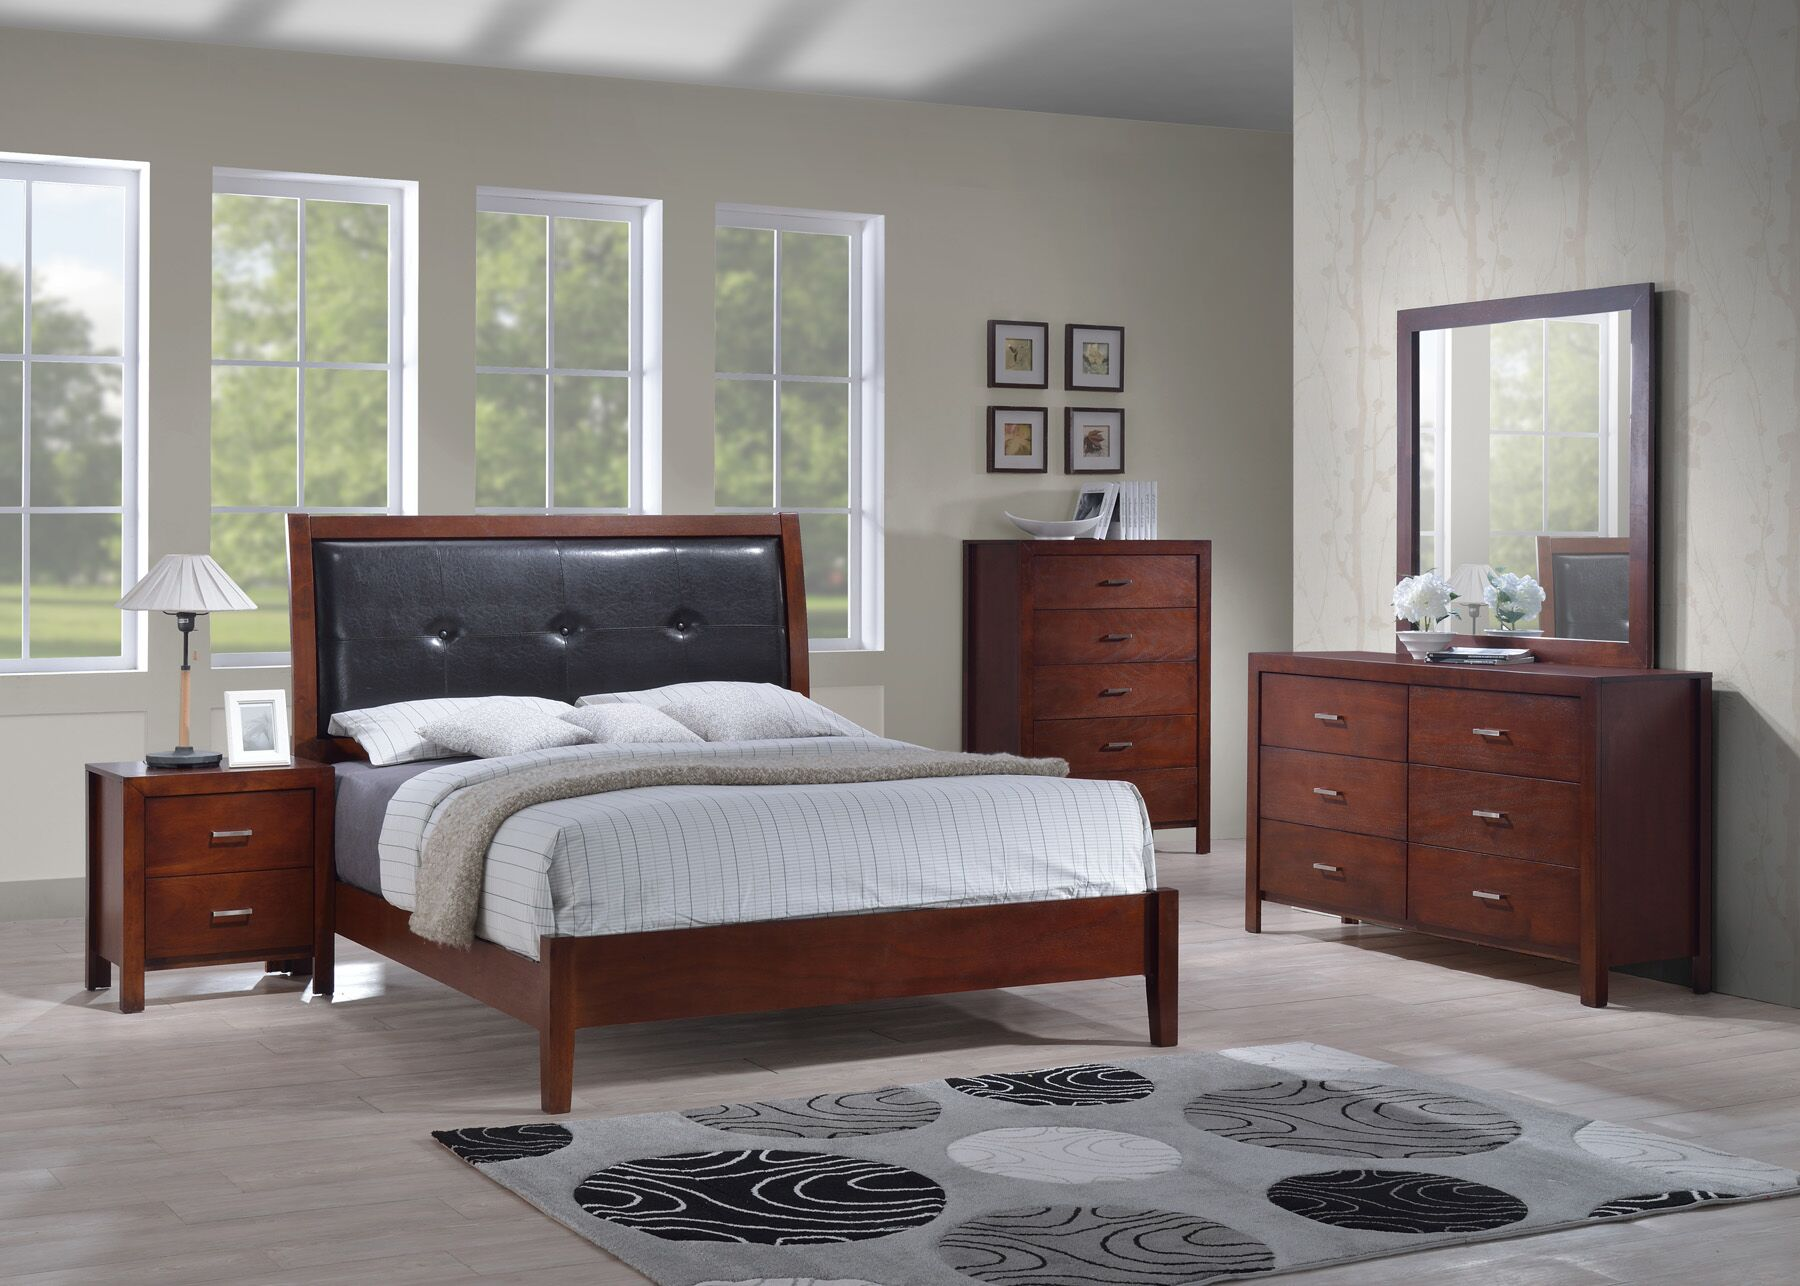 Upholstered Panel Bed Size: Queen, Color: Cherry